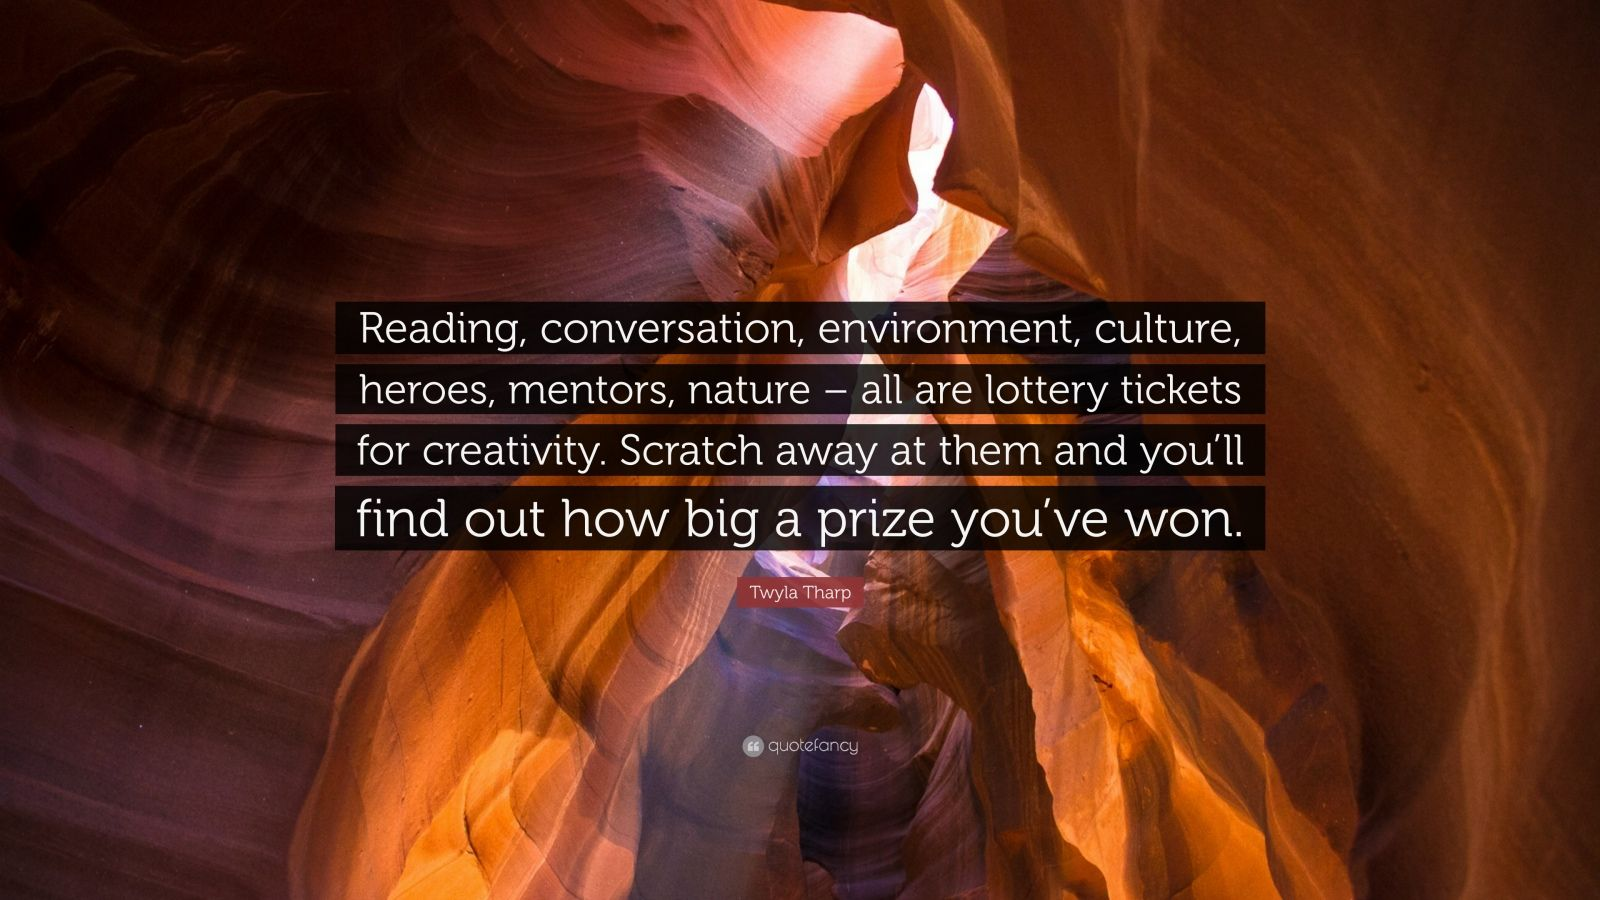 """Twyla Tharp Quote: """"Reading, conversation, environment, culture, heroes, mentors, nature – all are lottery tickets for creativity. Scratch away at them and you'll find out how big a prize you've won."""""""